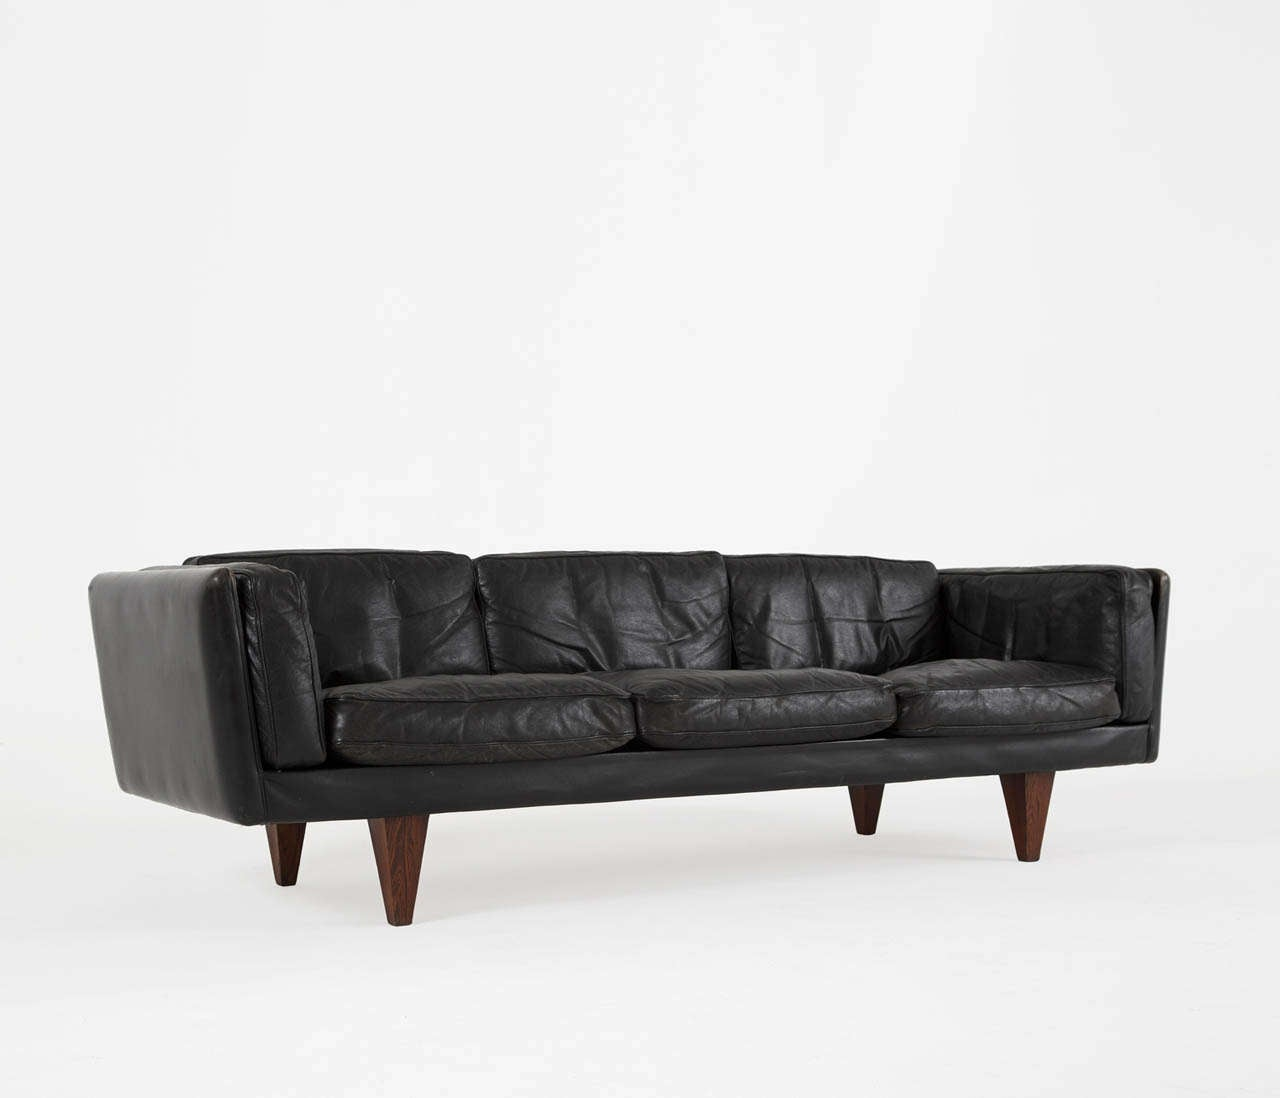 Illum Wikkelso 3 Seater Sofa  Black Leather and Down Filled image 3